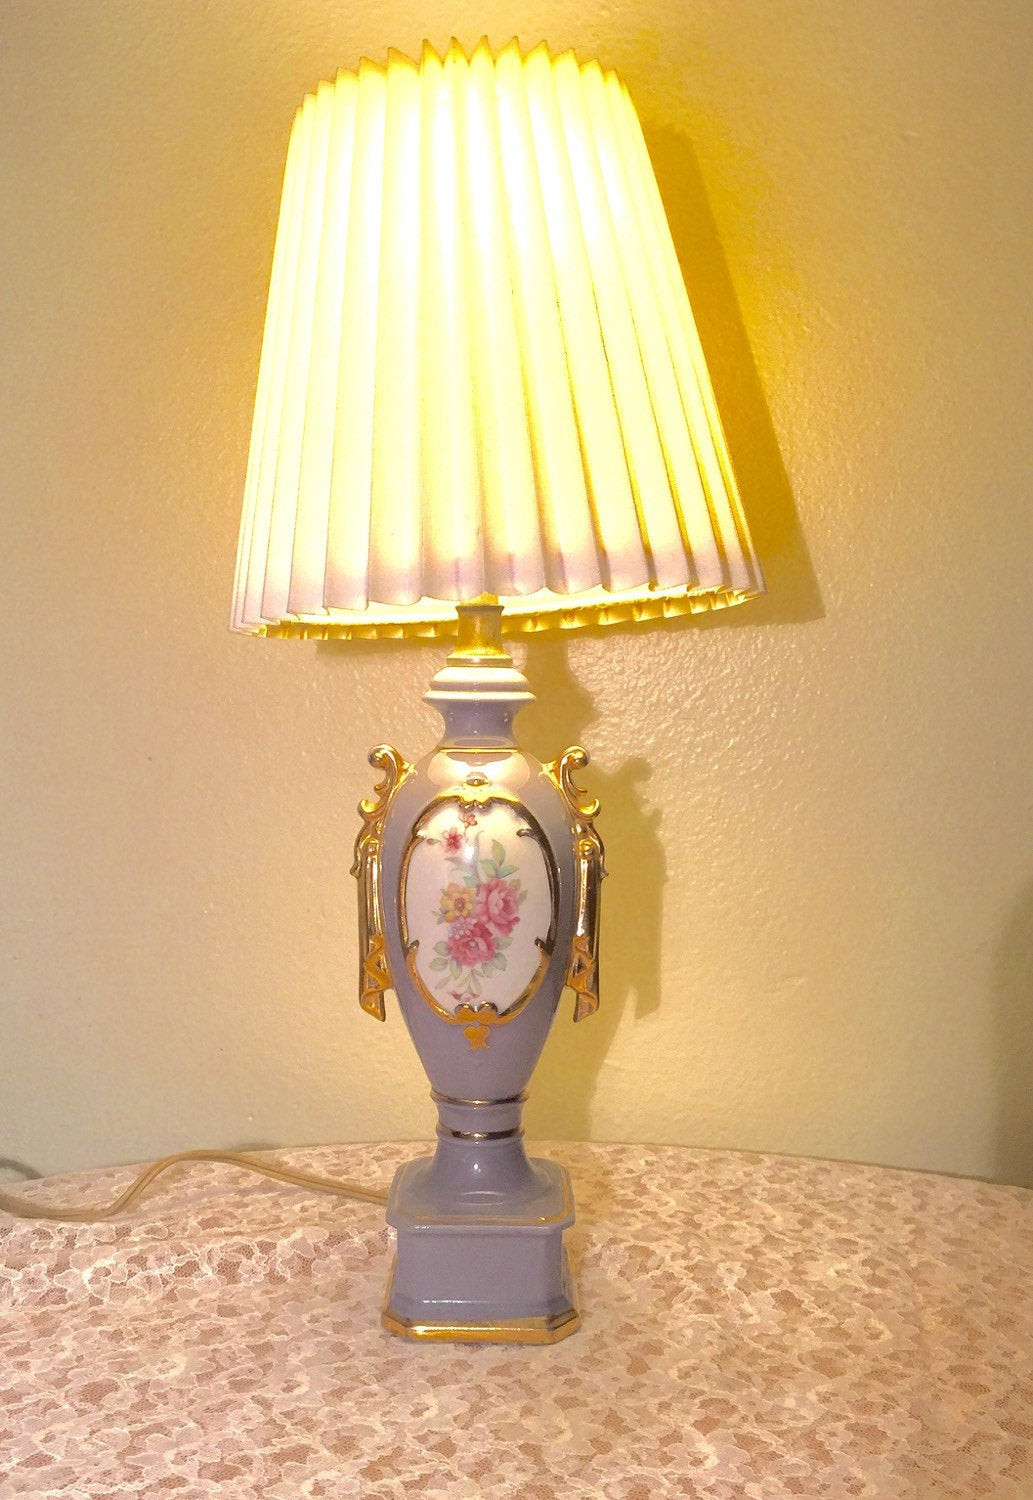 Best ideas about Small Desk Lamp . Save or Pin Vintage Ceramic Desk Lamp Small Now.